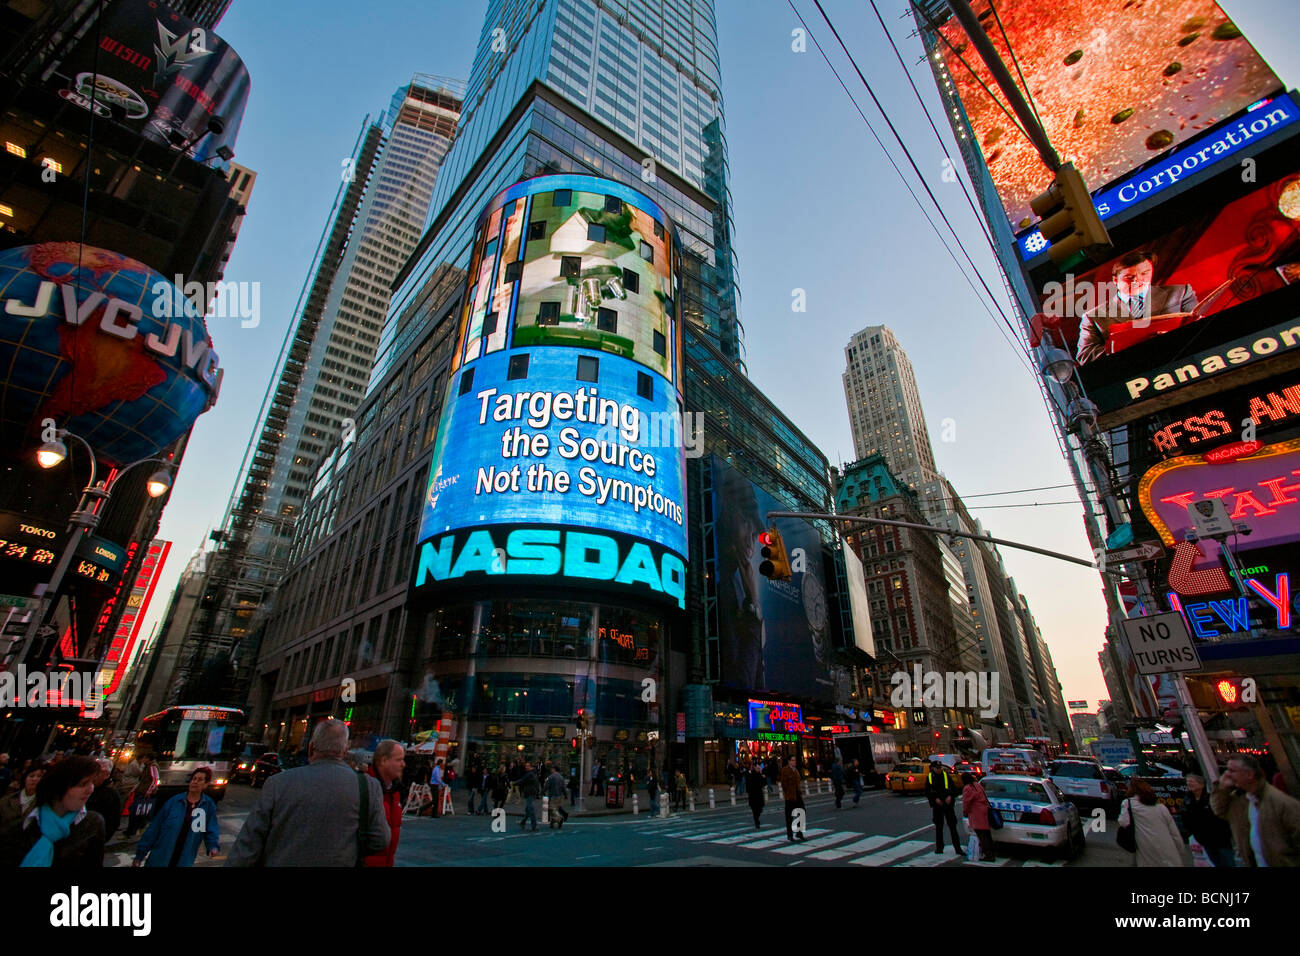 the nasdaq stock exchange building in times square in new york city stock photo 25061379 alamy. Black Bedroom Furniture Sets. Home Design Ideas